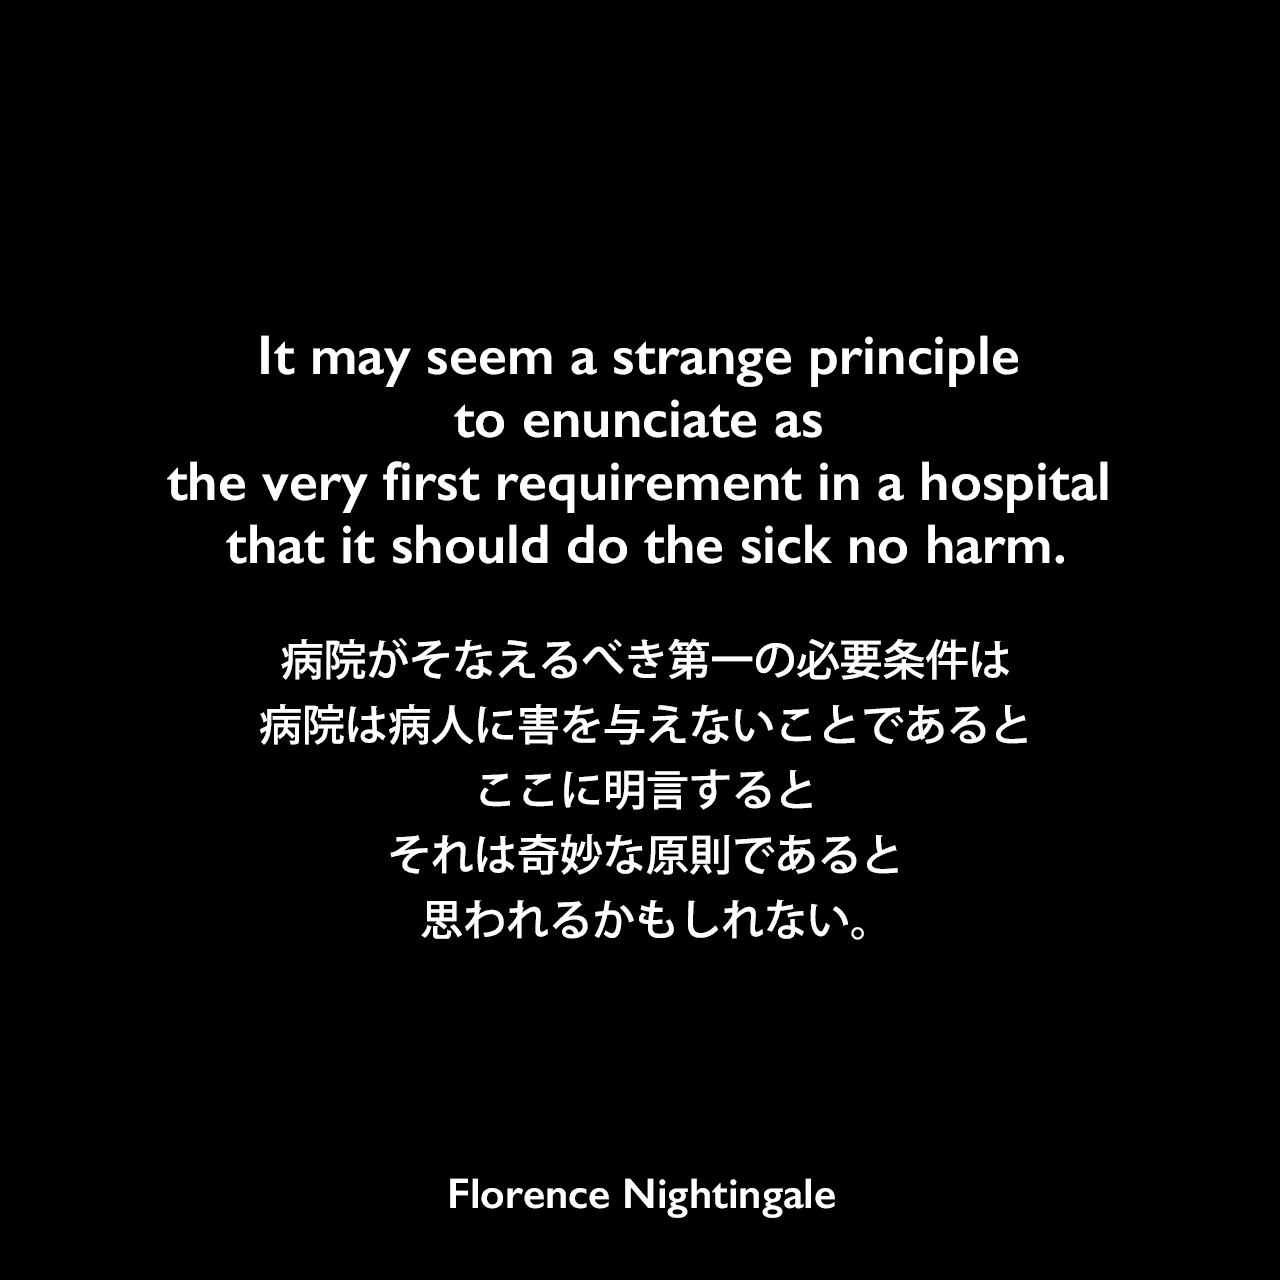 It may seem a strange principle to enunciate as the very first requirement in a hospital that it should do the sick no harm.病院がそなえるべき第一の必要条件は、病院は病人に害を与えないことである、とここに明言すると、それは奇妙な原則であると思われるかもしれない。- ナイチンゲールの本「Notes on hospitals」よりFlorence Nightingale